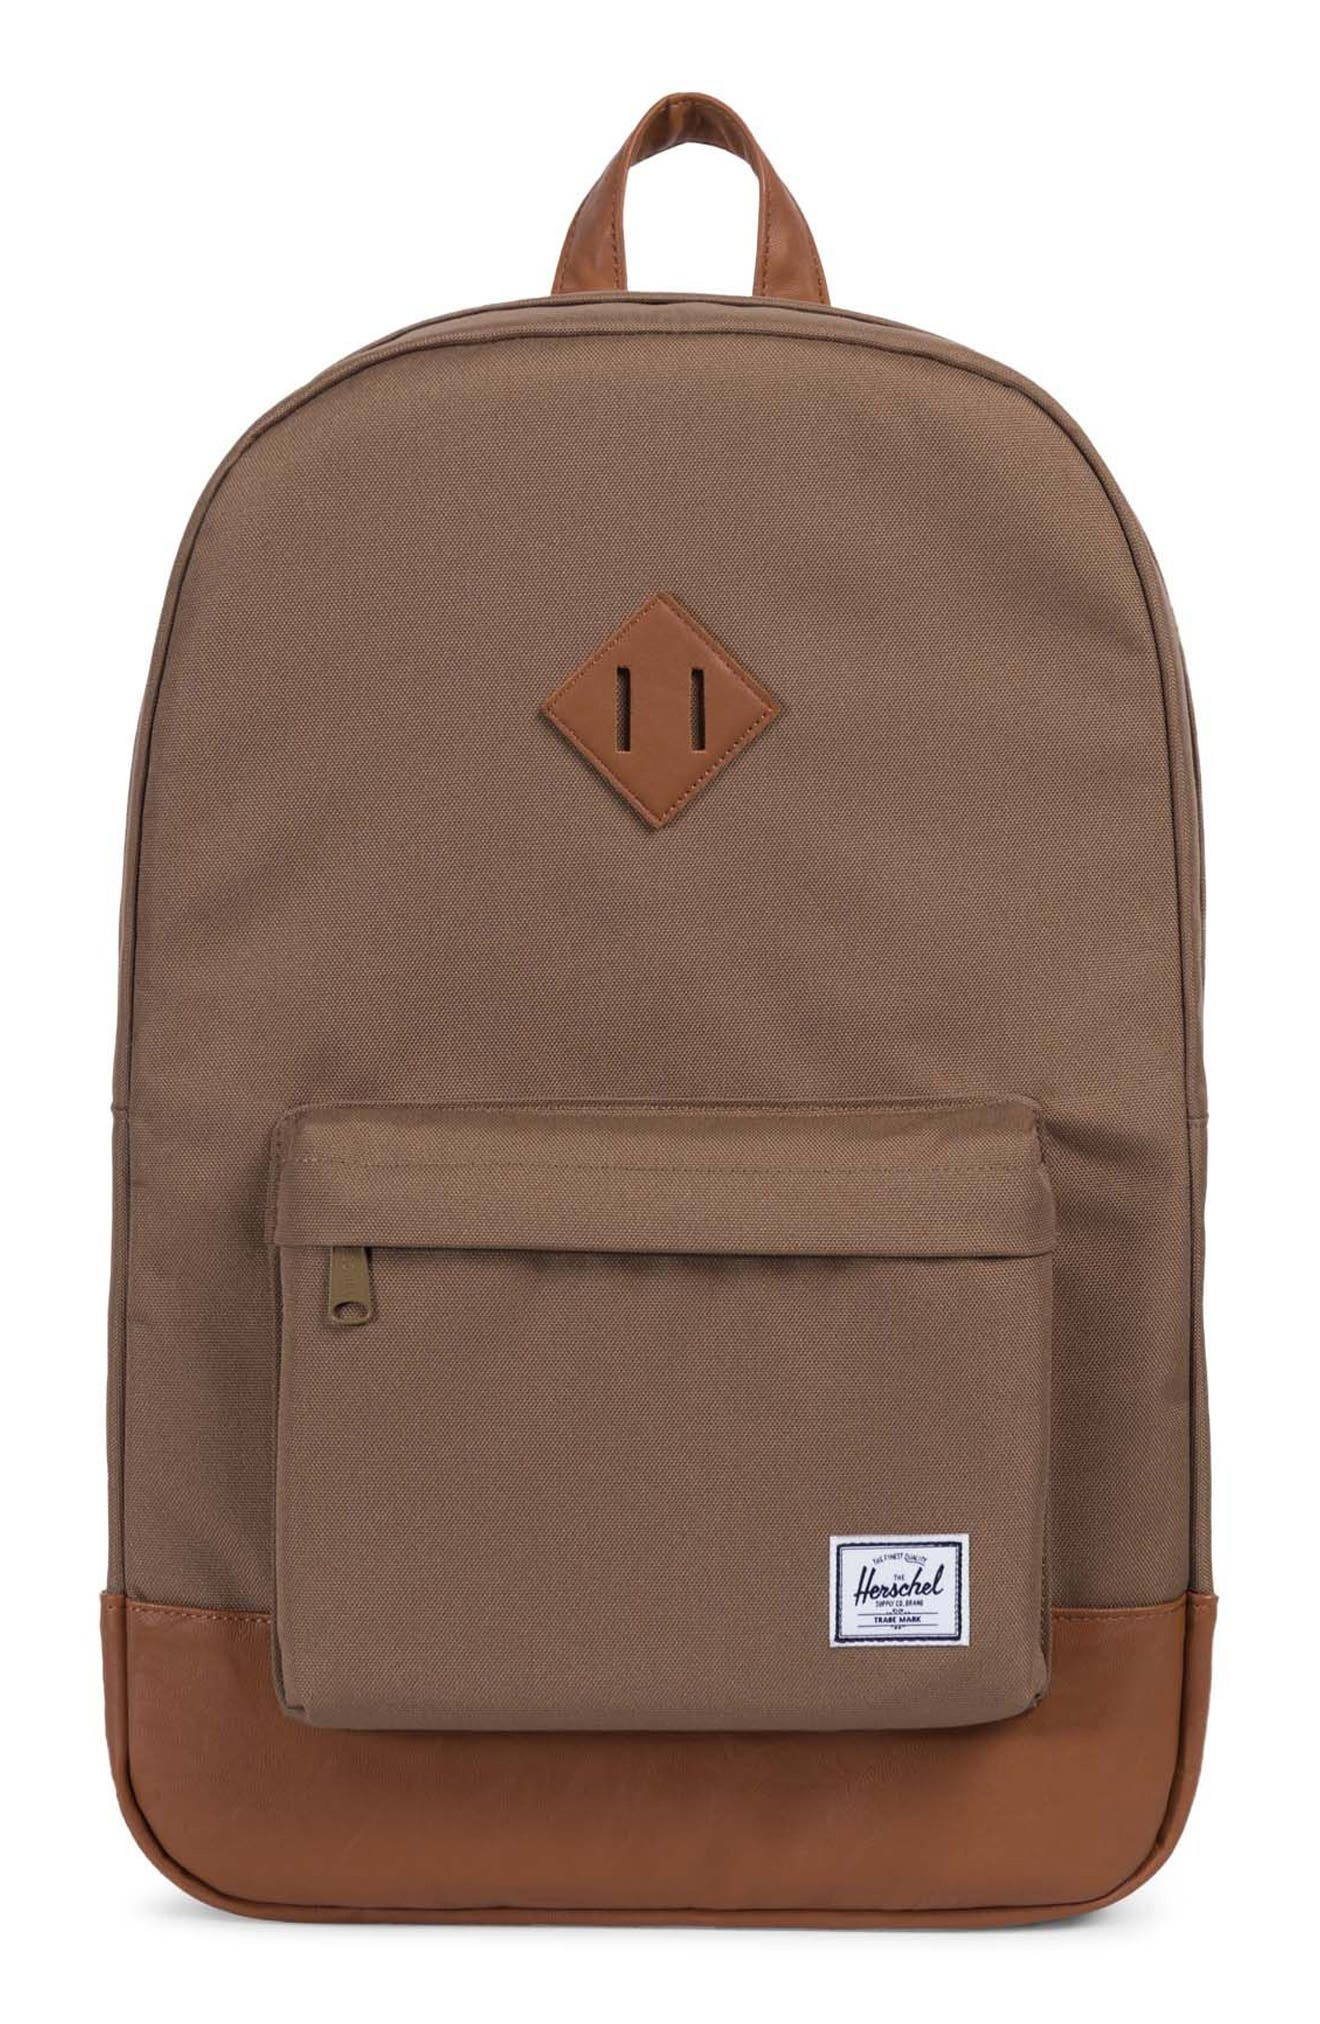 Heritage Backpack,                             Main thumbnail 1, color,                             Cub/ Tan